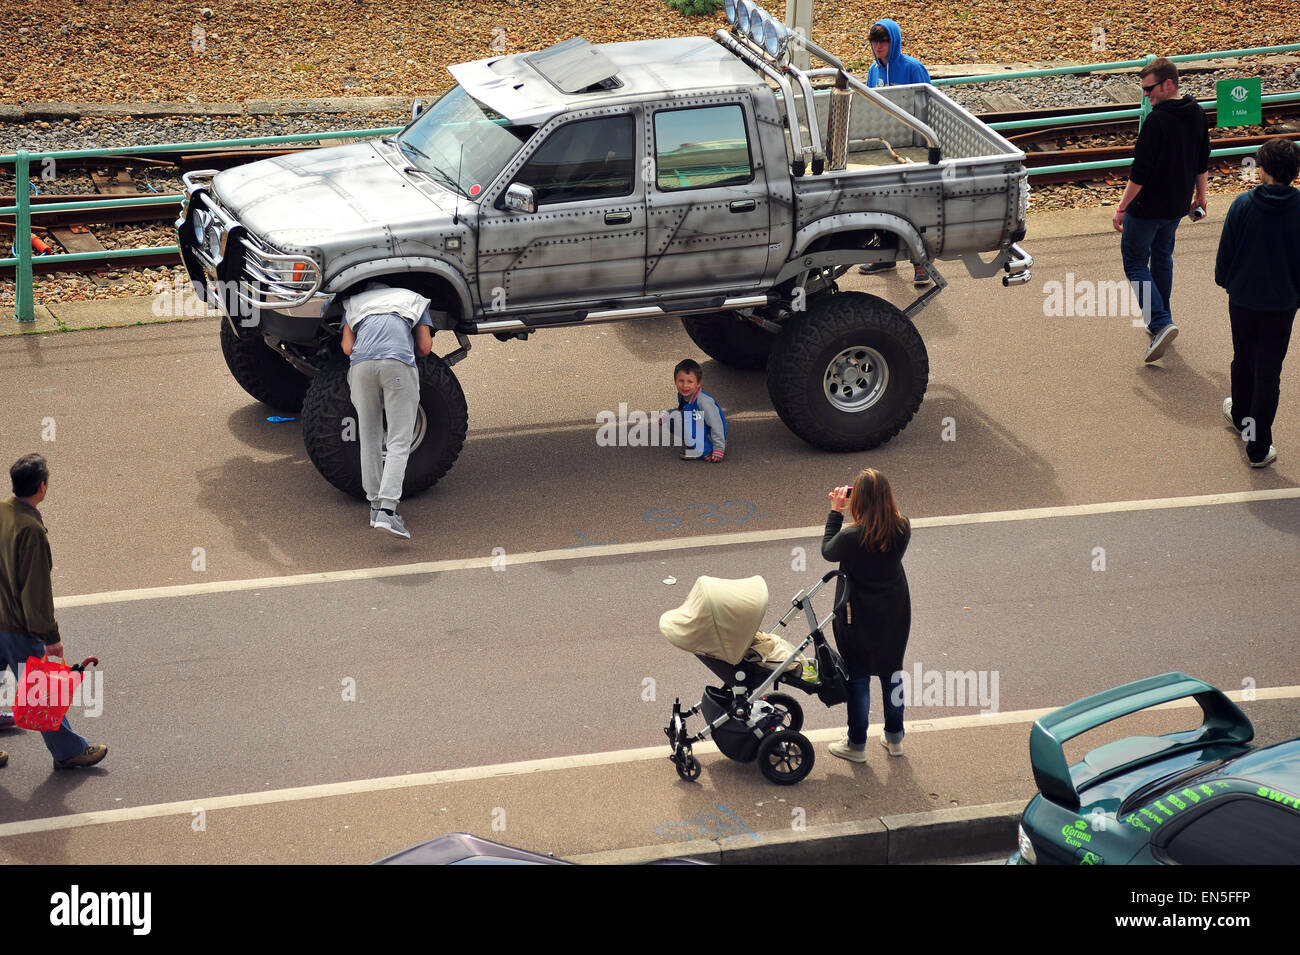 Modified 4x4 Stock Photos & Modified 4x4 Stock Images - Alamy